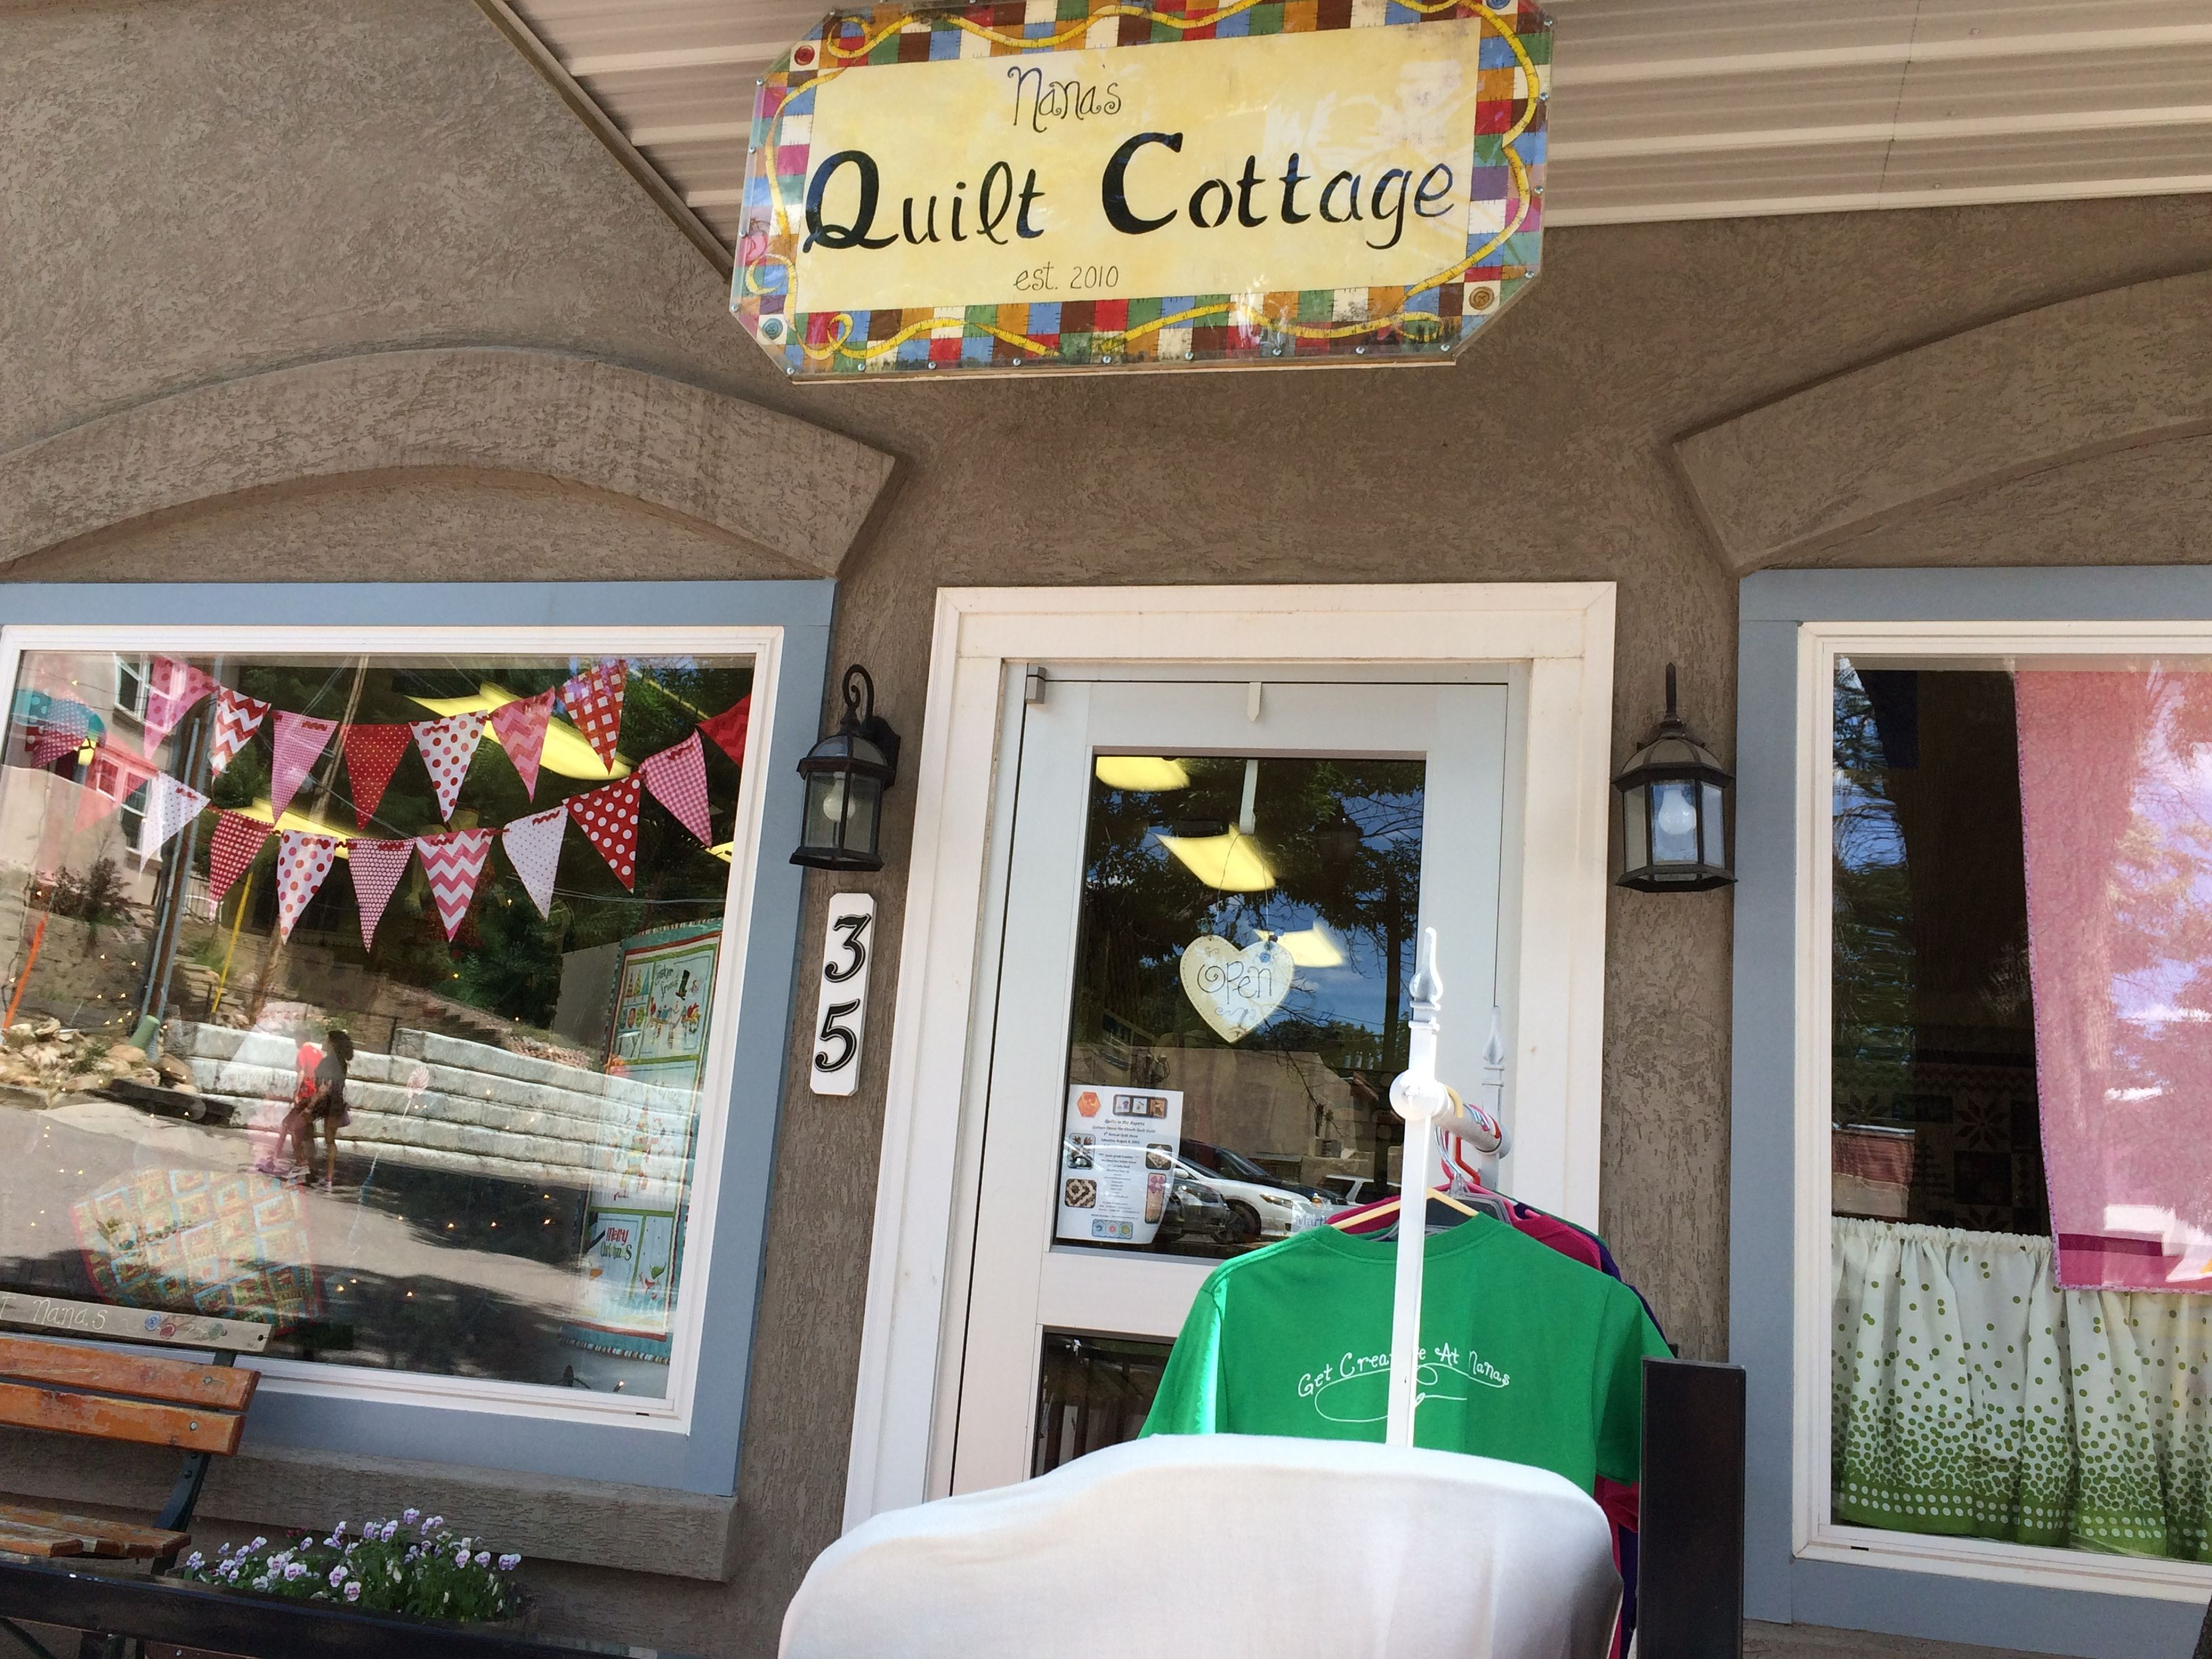 The Quilt Cottage, Colorado Springs, CO